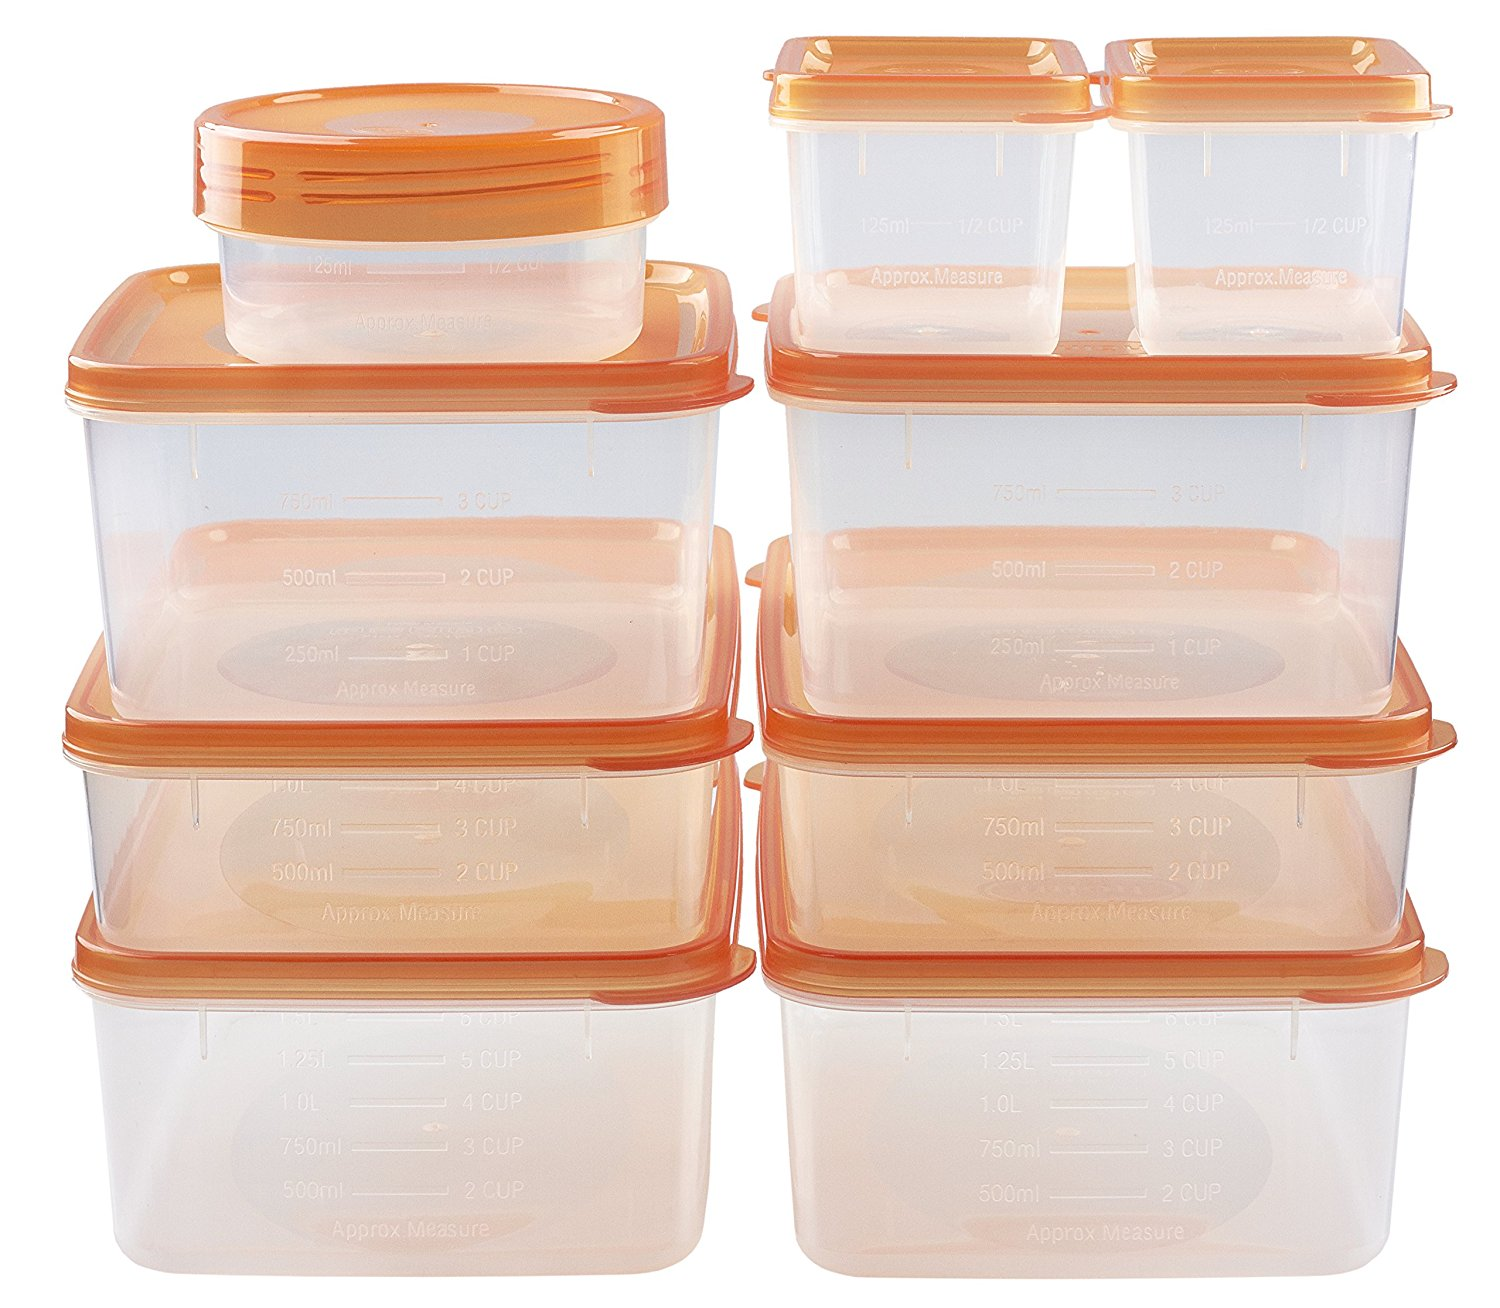 3. hölm BPA Free Reusable Square Food Storage Containers with Lids